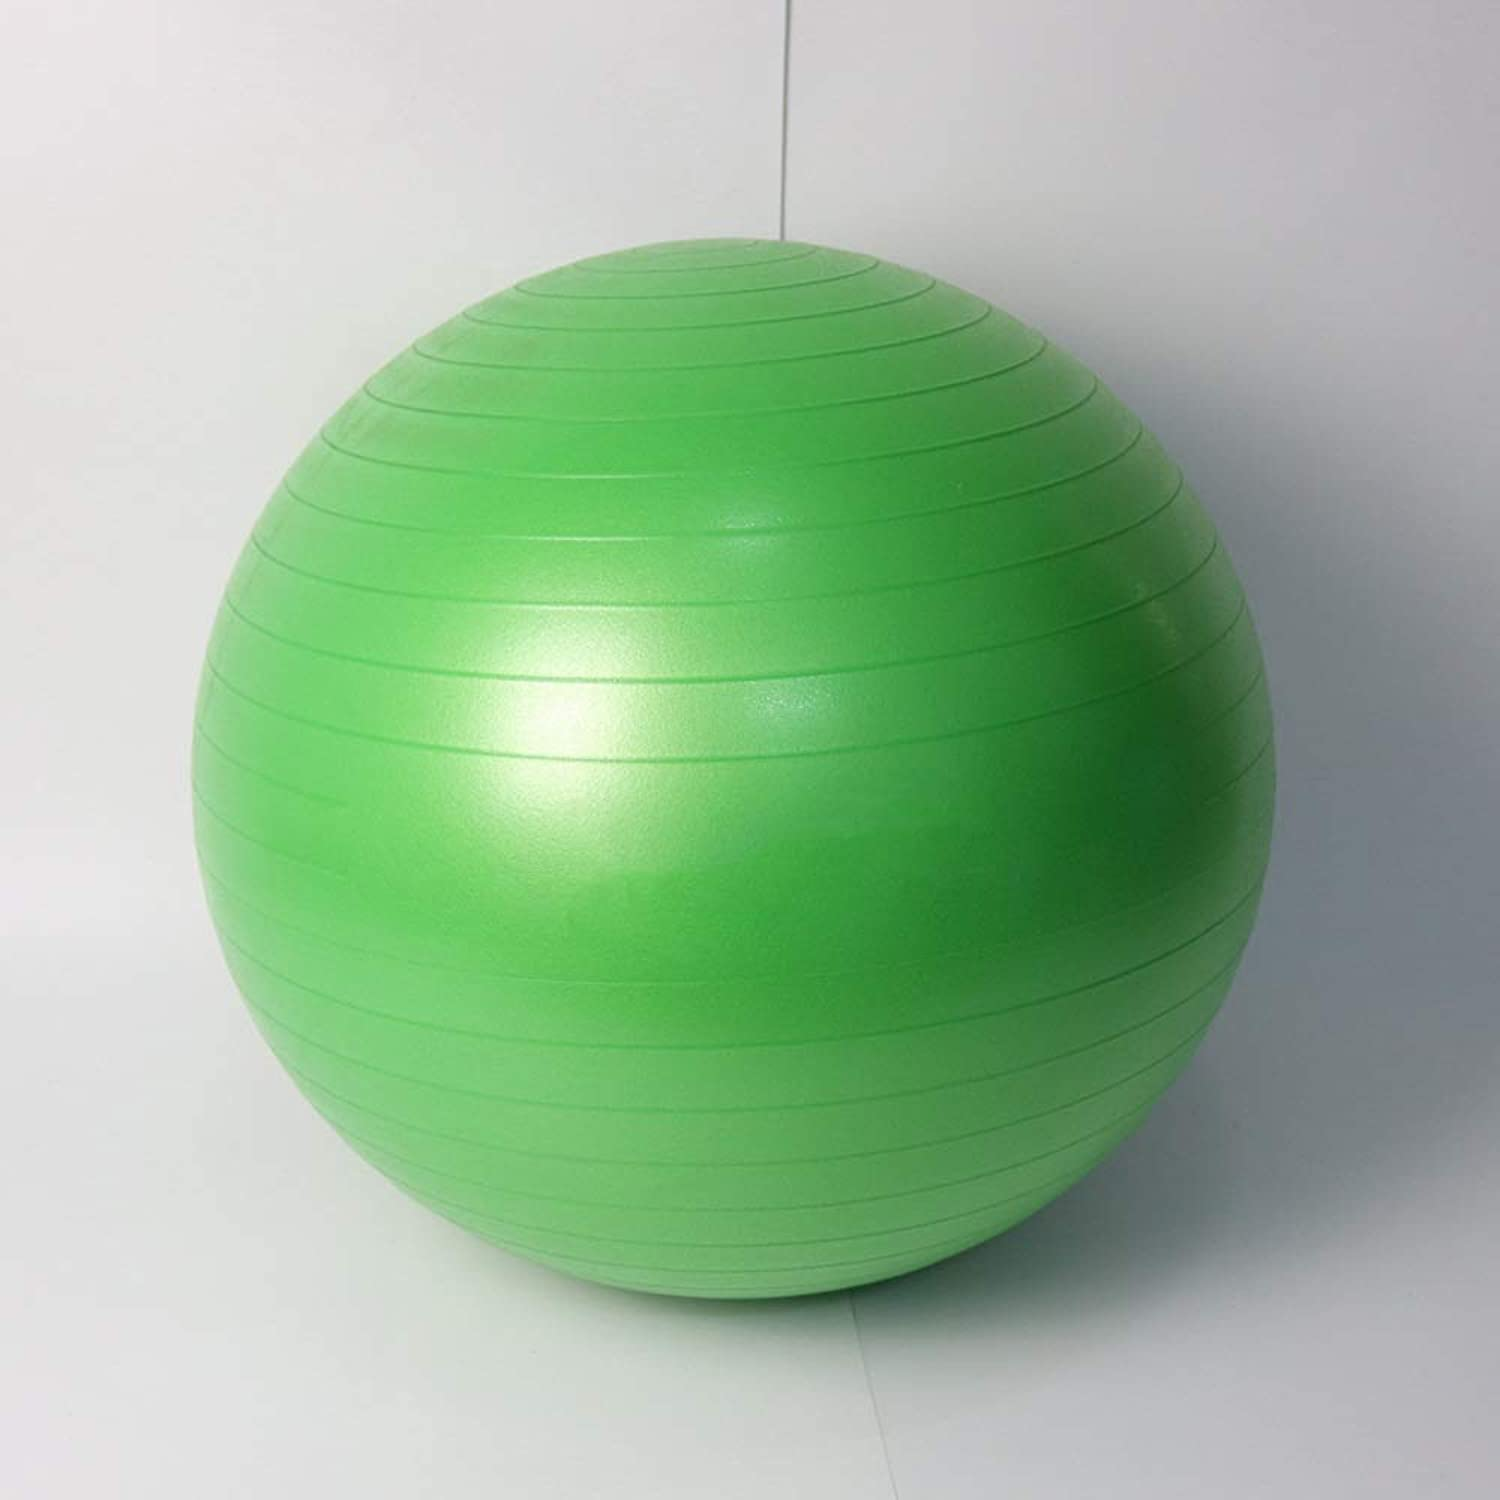 Fit Exercise Ball for Fitness Stability Balance Yoga  Workout Guide Quick Pump Included  Anti Burst Professional Quality Design Medium Exercise Ball blueee Green Pink Purple Red Brown